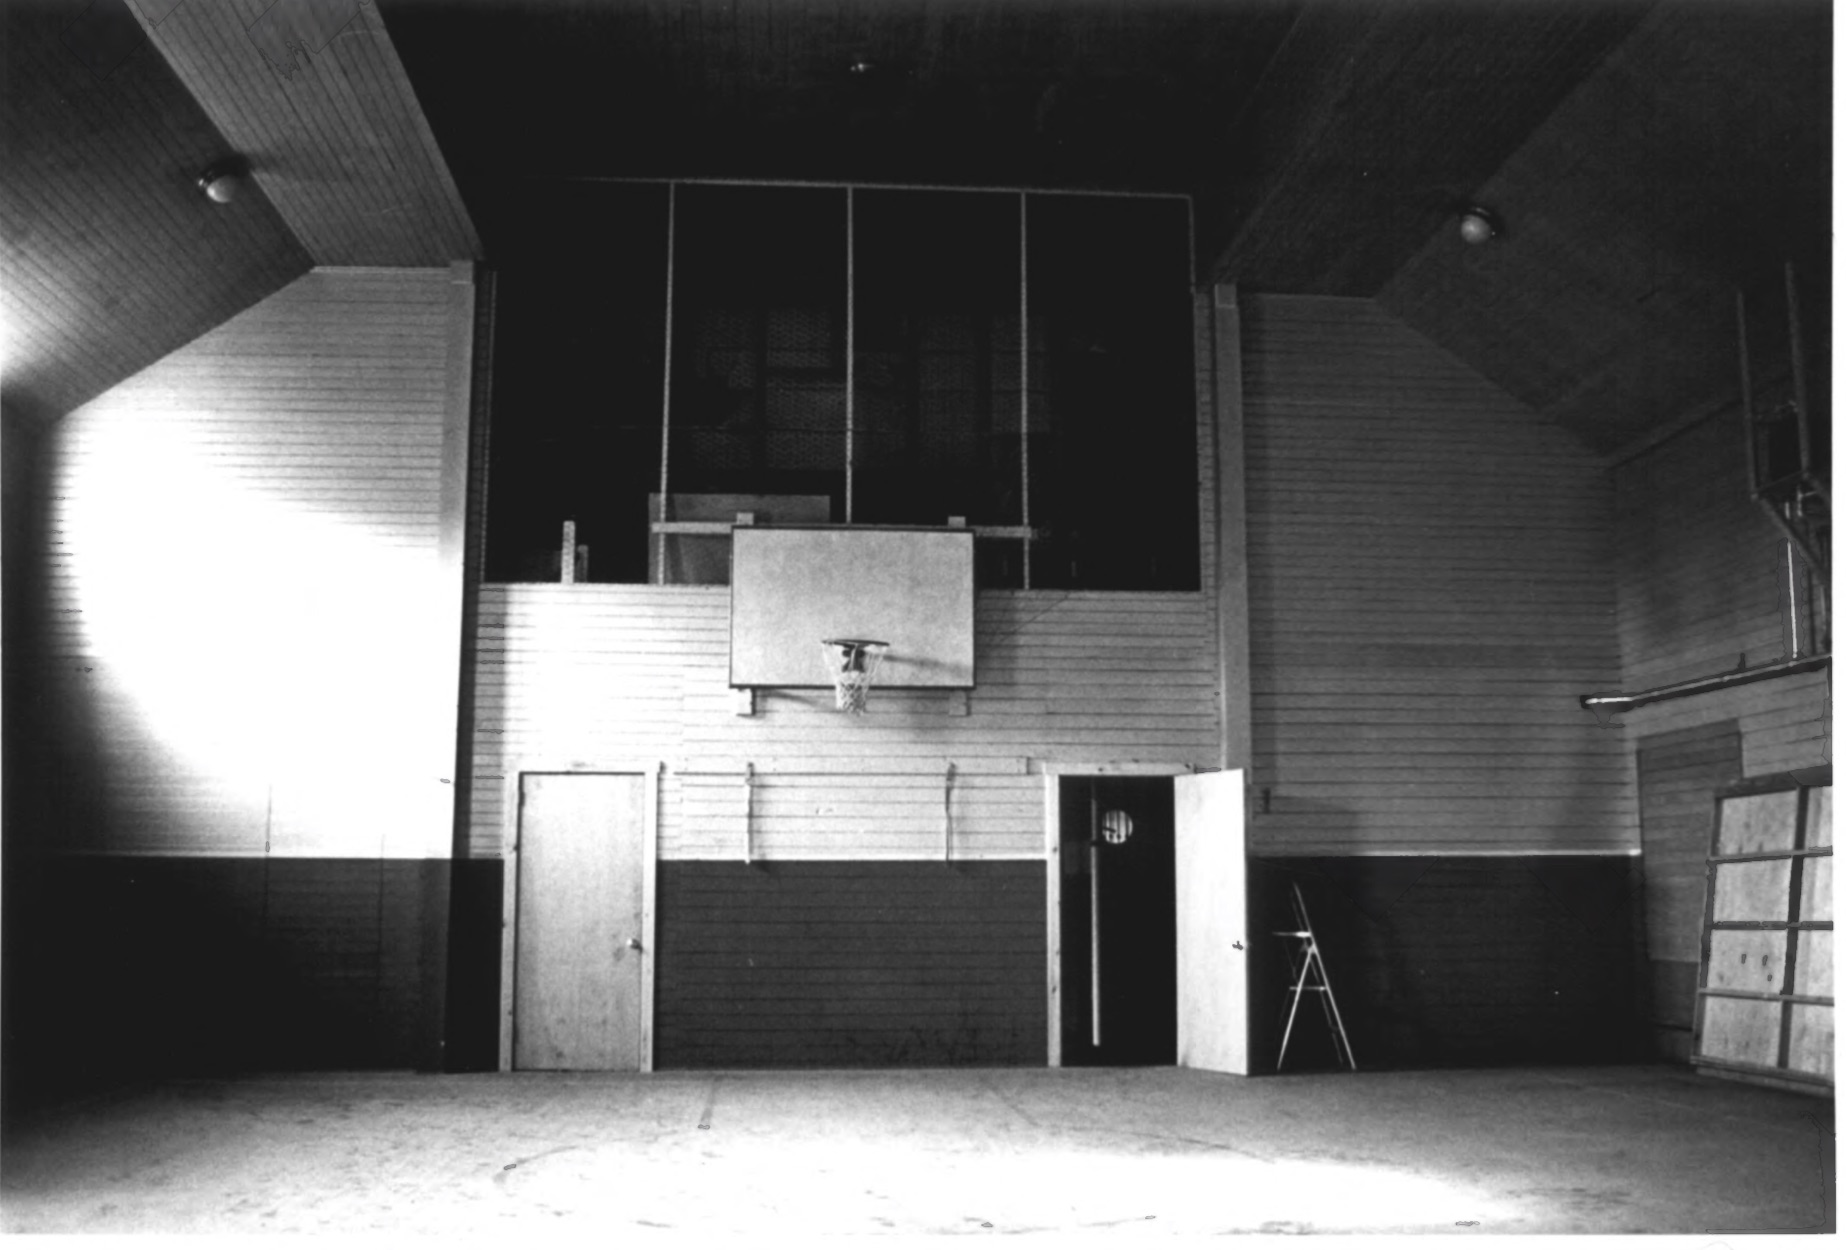 Western Interior with Basketball Hoop, CJ Starr Barn in 1979 by Steven H. Hirschberg as Recorded on the National Park Service National Register of Historic Places